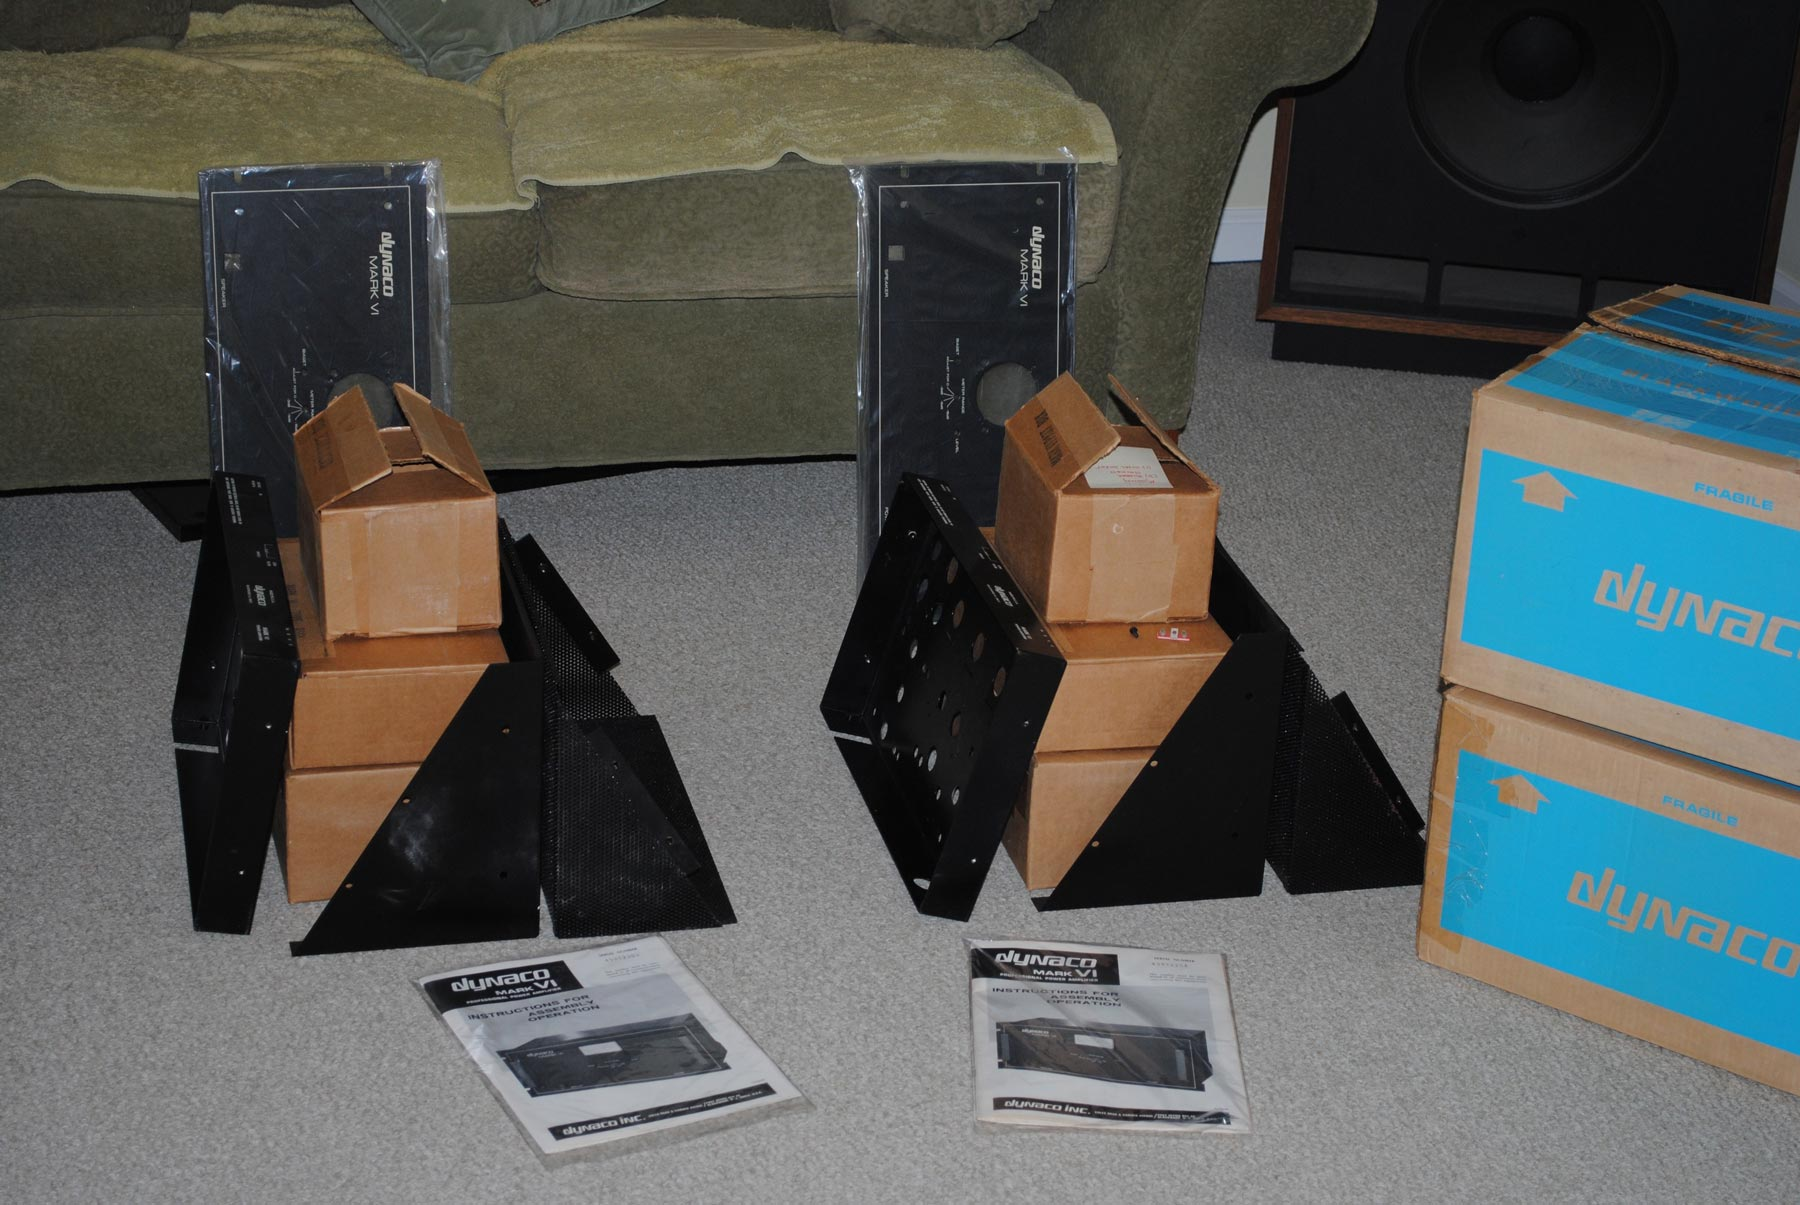 Dynaco MK VI Power Amps NOS